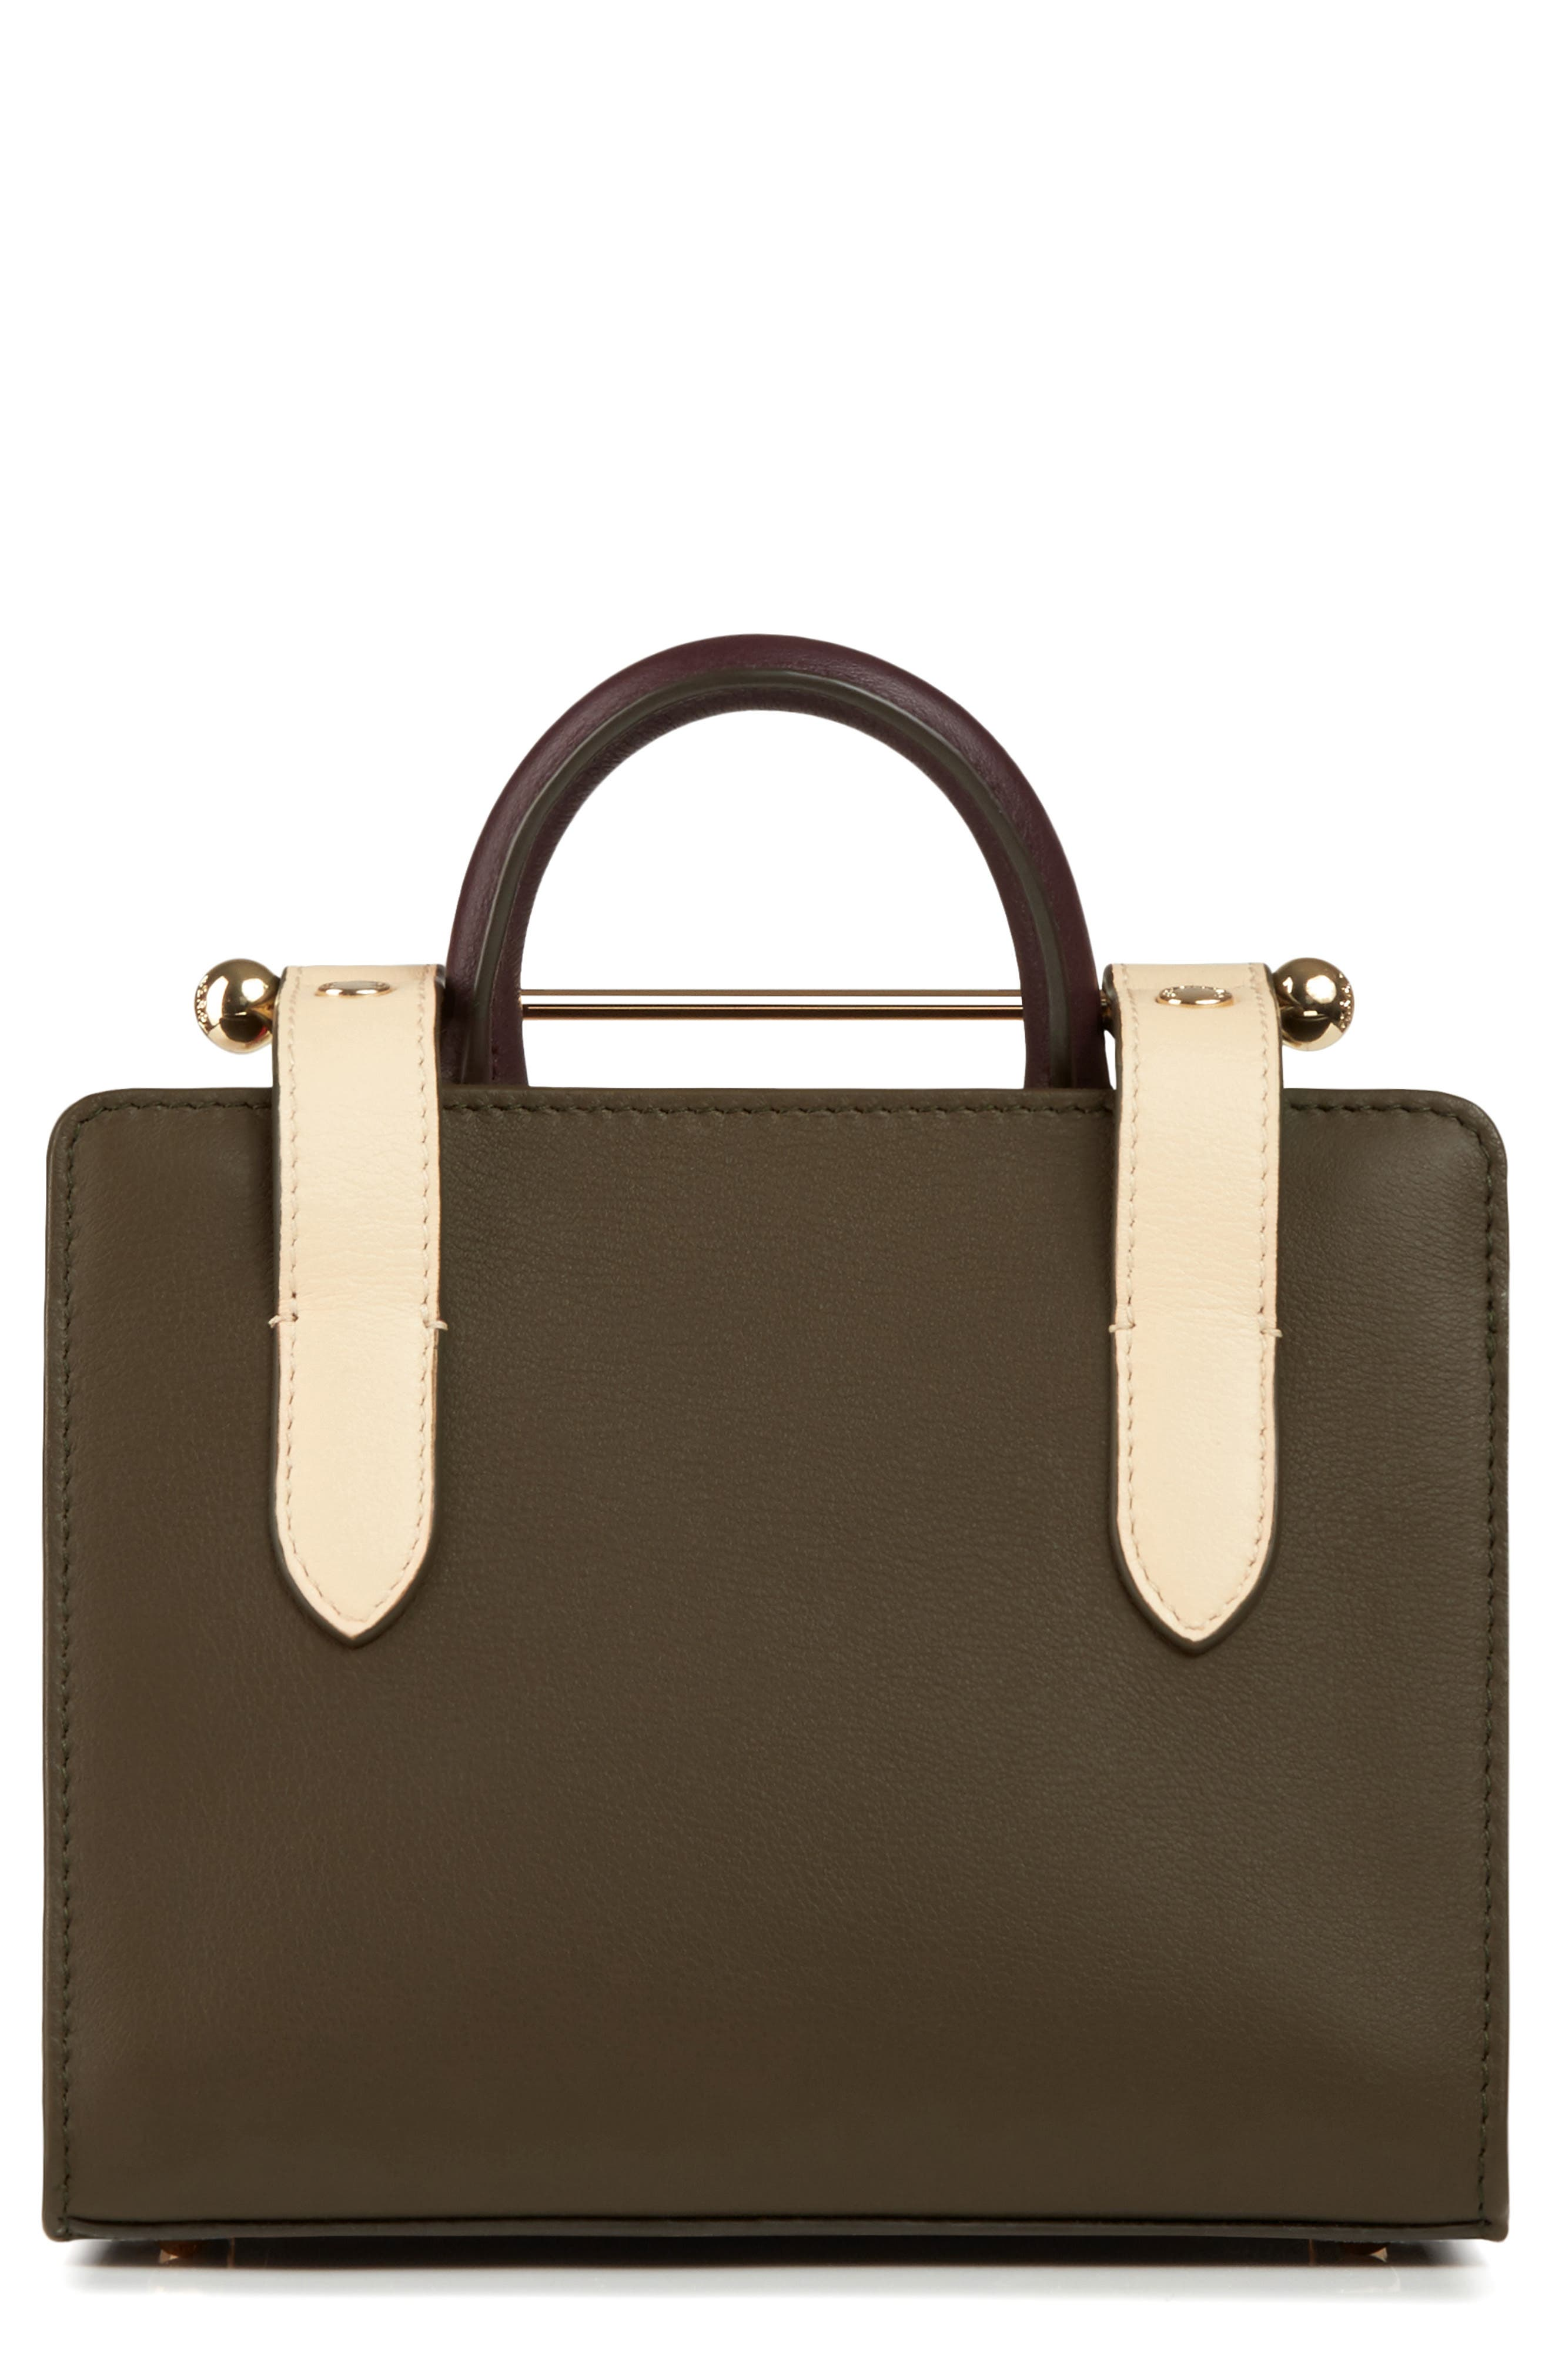 STRATHBERRY, Nano Tricolor Leather Satchel, Alternate thumbnail 2, color, FOREST/ SAND/ BURGUNDY